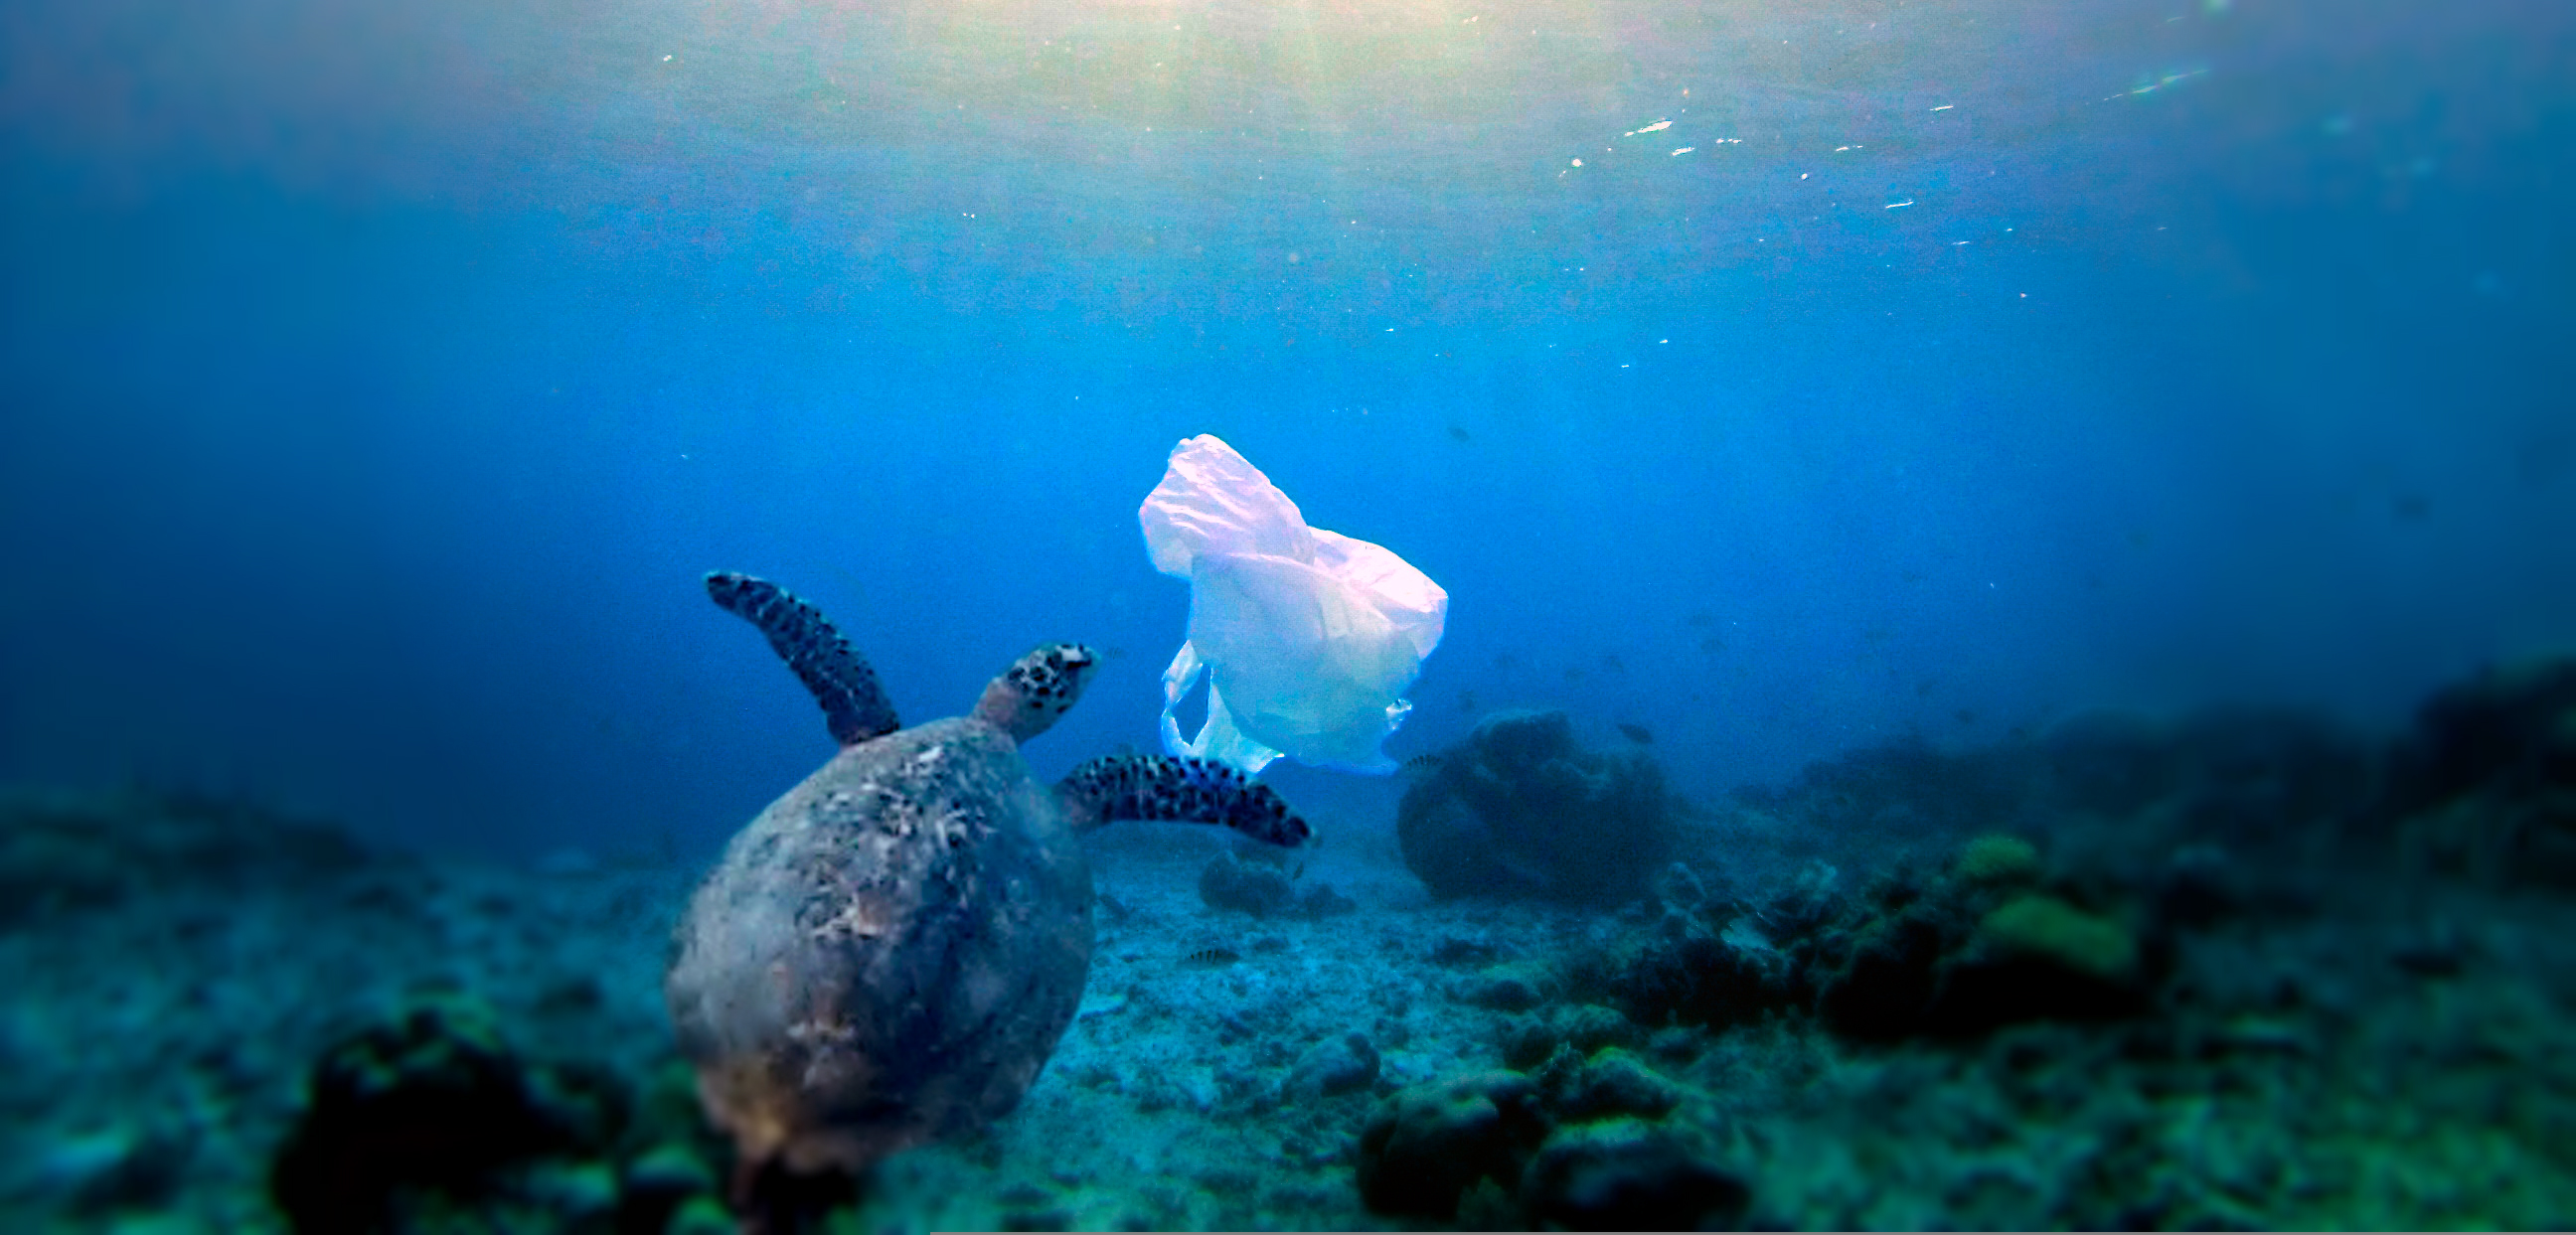 Turtles-mistake-plastic-bags-for-food-e.g.-jellyfish